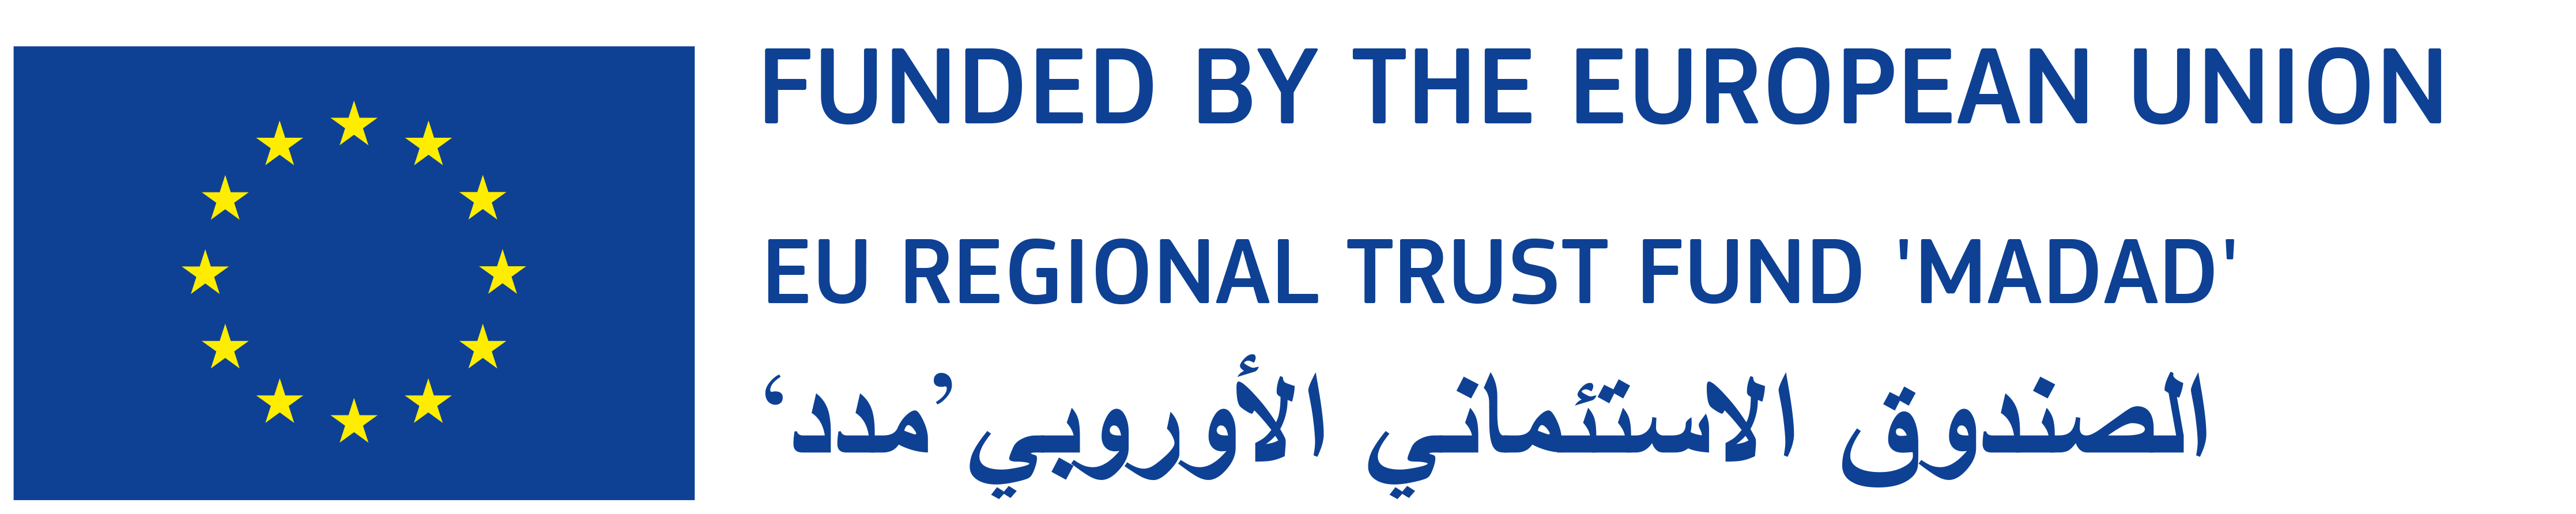 EU Regional Trust Fund in Response to the Syrian Crisis ( MADAD)